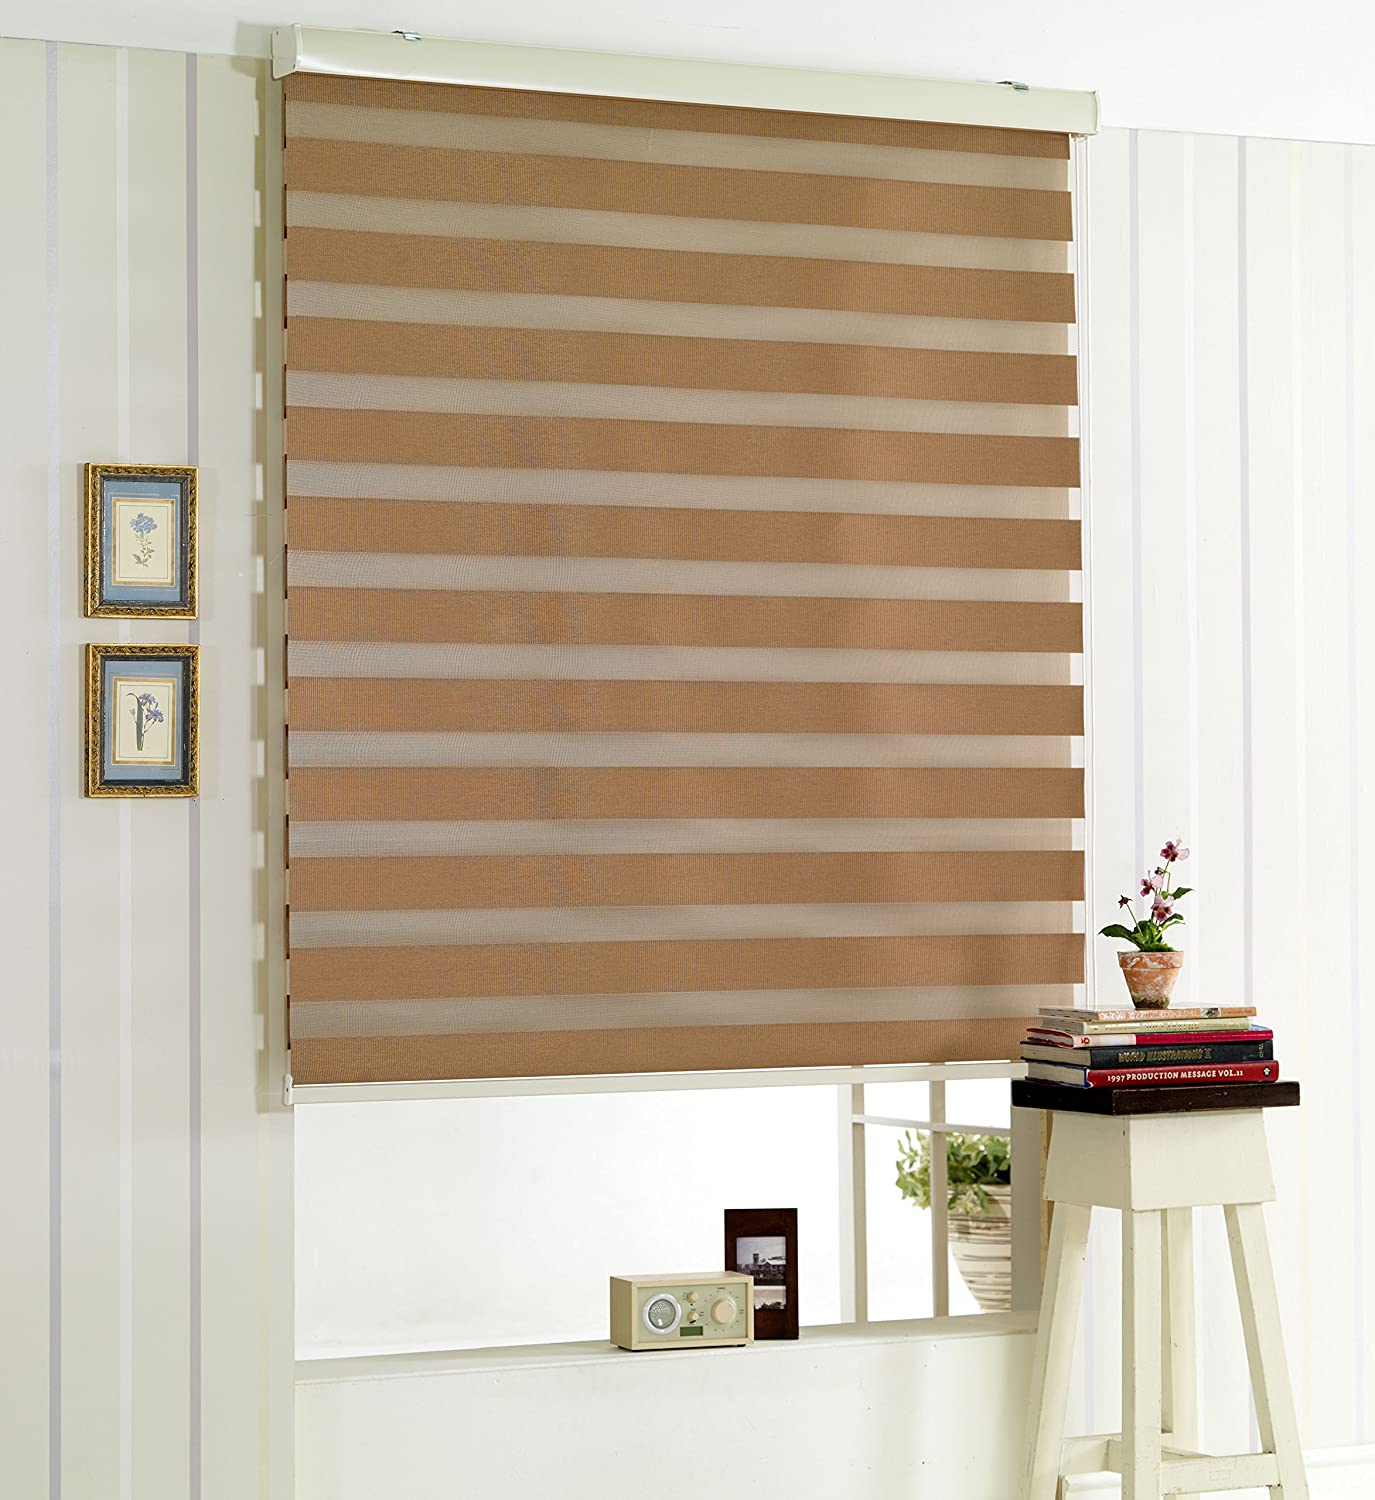 Foiresoft Custom Cut to Size, [Winsharp Blackout Pisa, Brown, W 71 x H 72 inch] Zebra Roller Blinds, Dual Layer Shades, Sheer or Privacy Light Control, Day and Night Window Drapes, 20 to 72 inch Wide